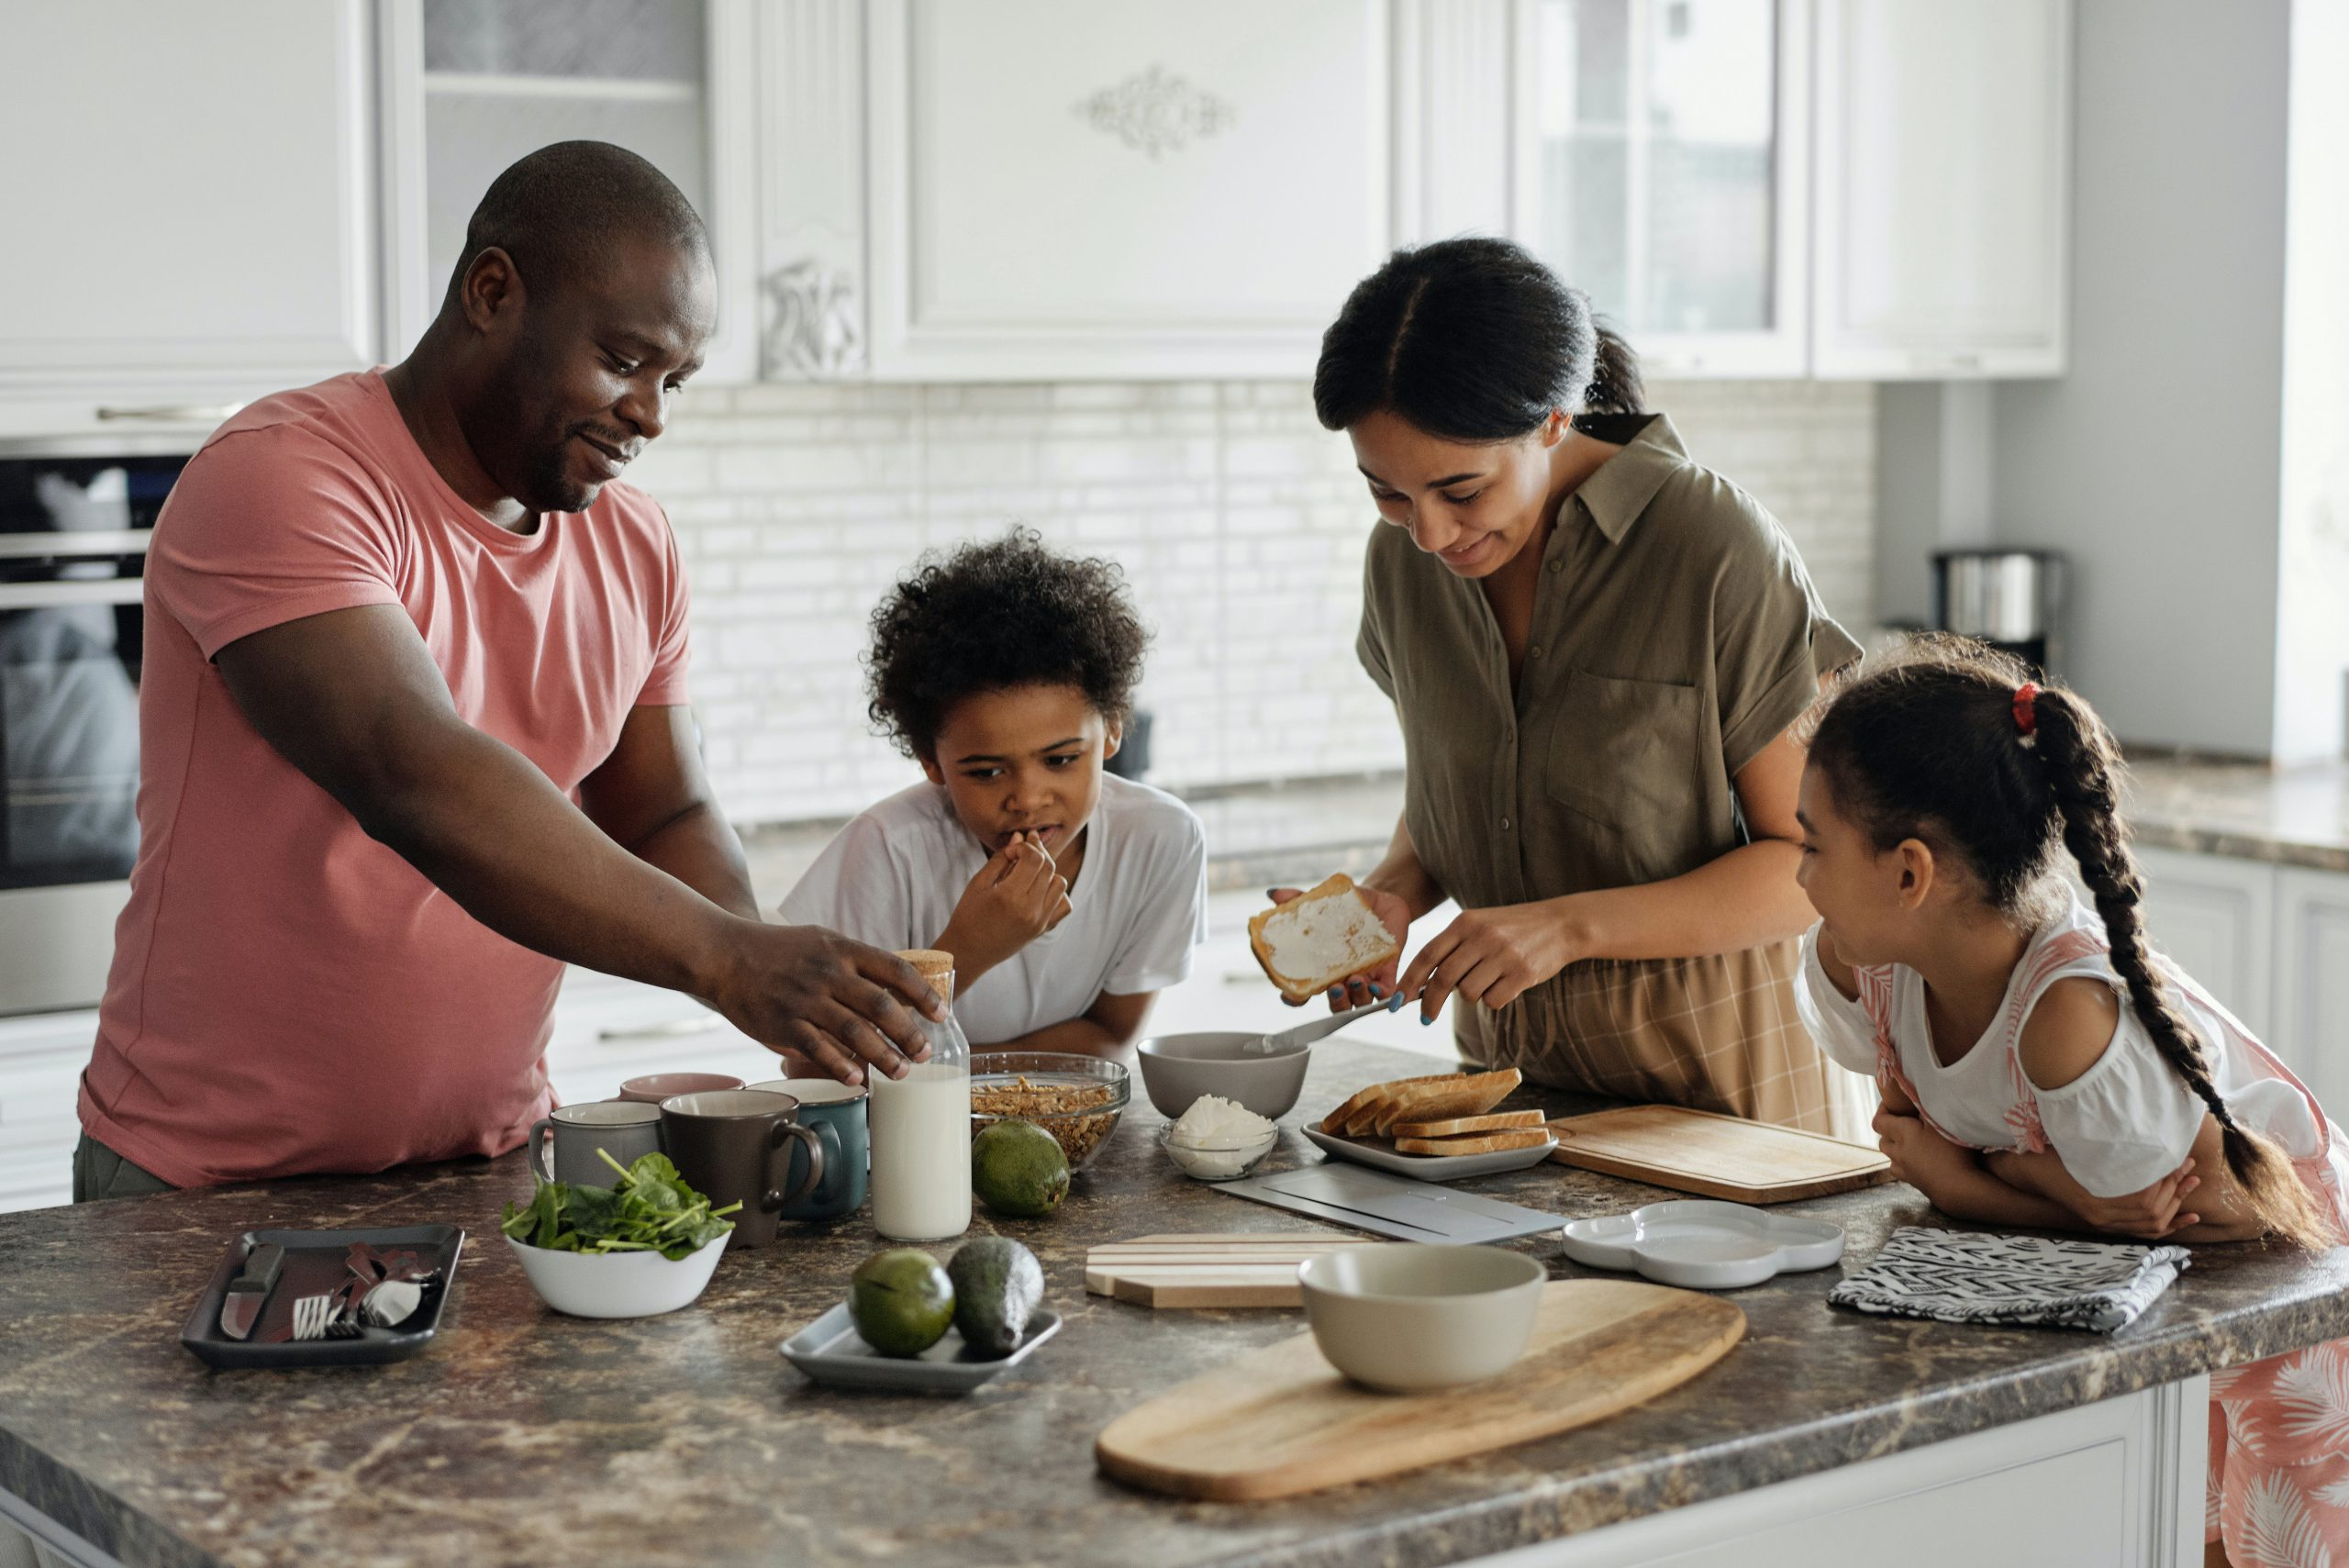 Family Financial Planning: Beyond the Double-Income Household